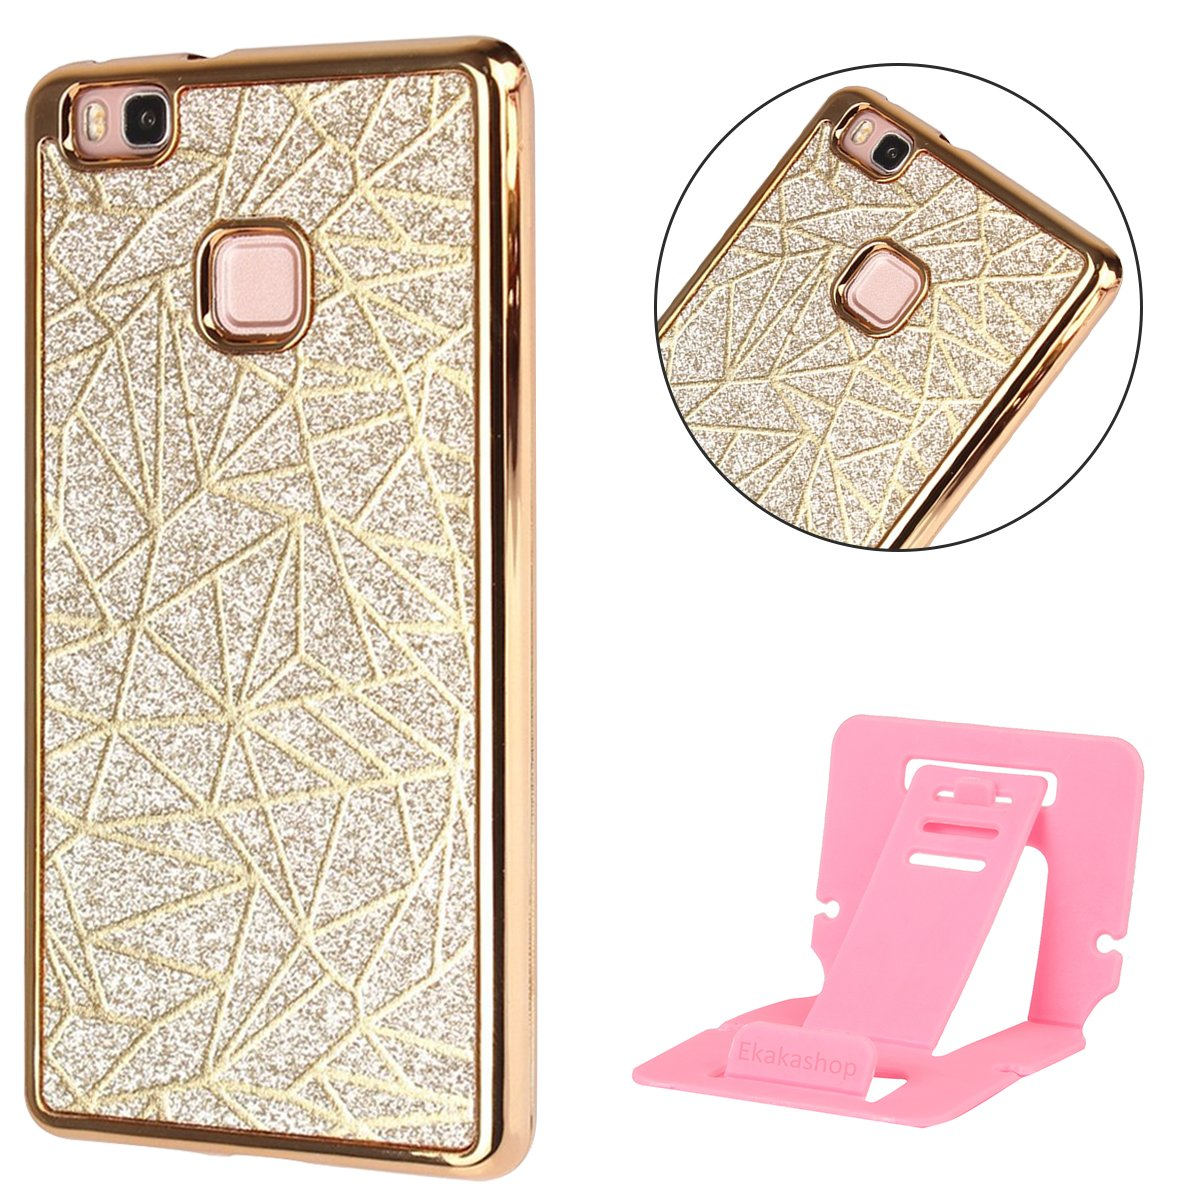 Coque iPhone SE,Strass Coque pour iphone 5s,Ekakashop Jolie 3D Cube d'eau en Argent Bling Shiny Brillant Coque de Protection en TPU Silicone Crystal Clair Souple Gel Housse Protecteur Back Cover Rigide Defender pour Apple iPhone SE / 5S / 5 + 1X cartes gra